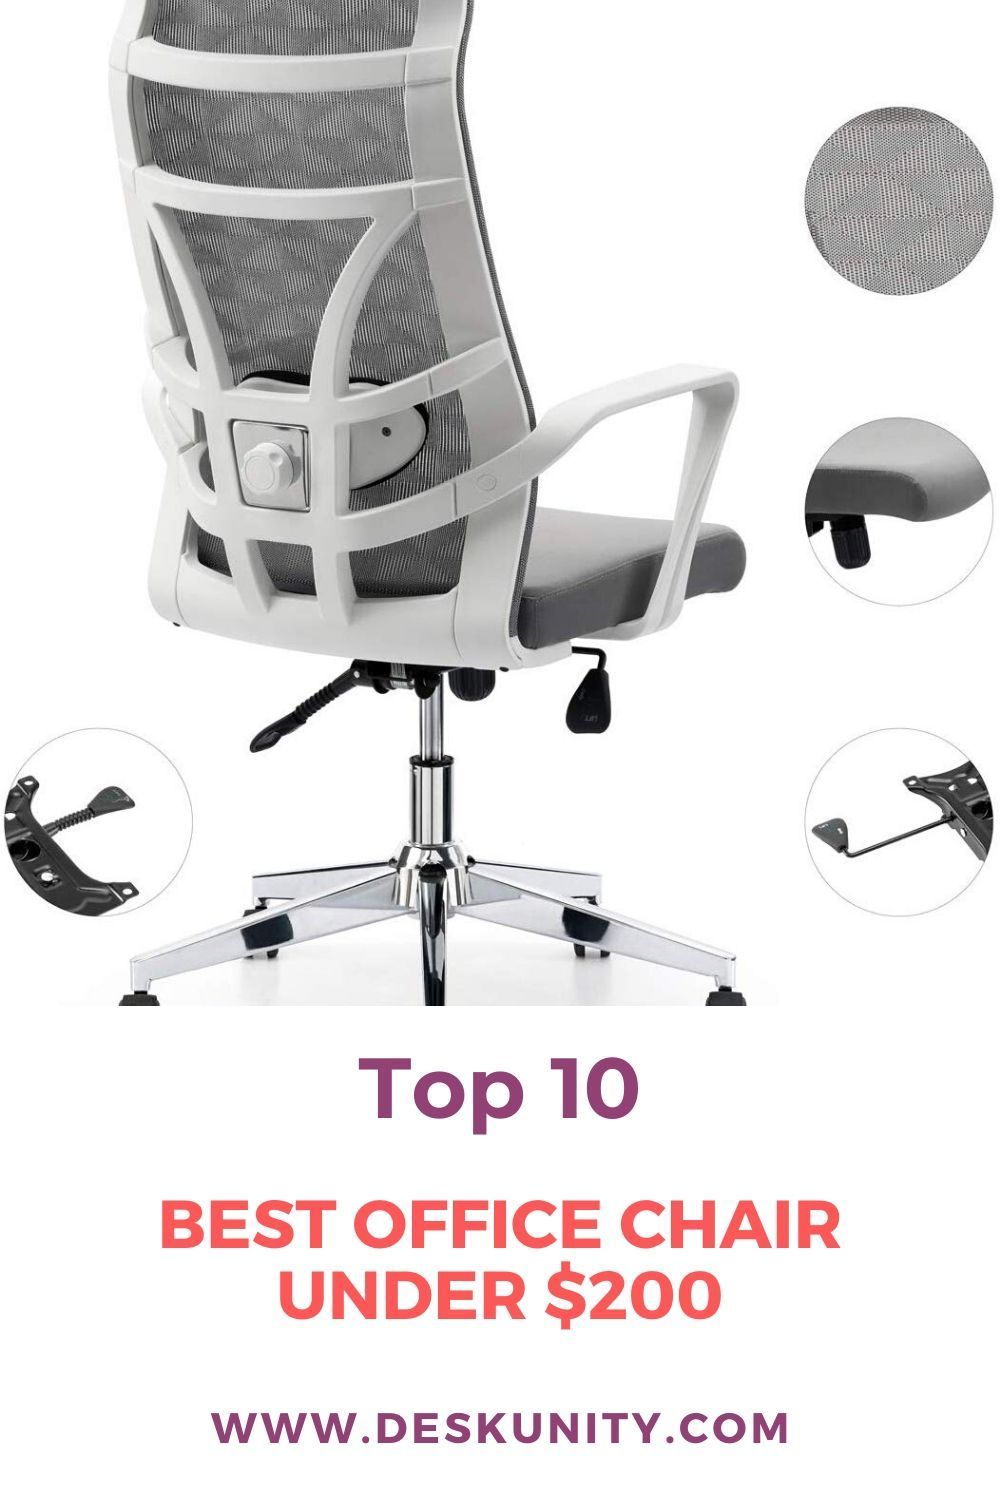 Top 10 Best Office Chair Under 200 in 2020 Office chair